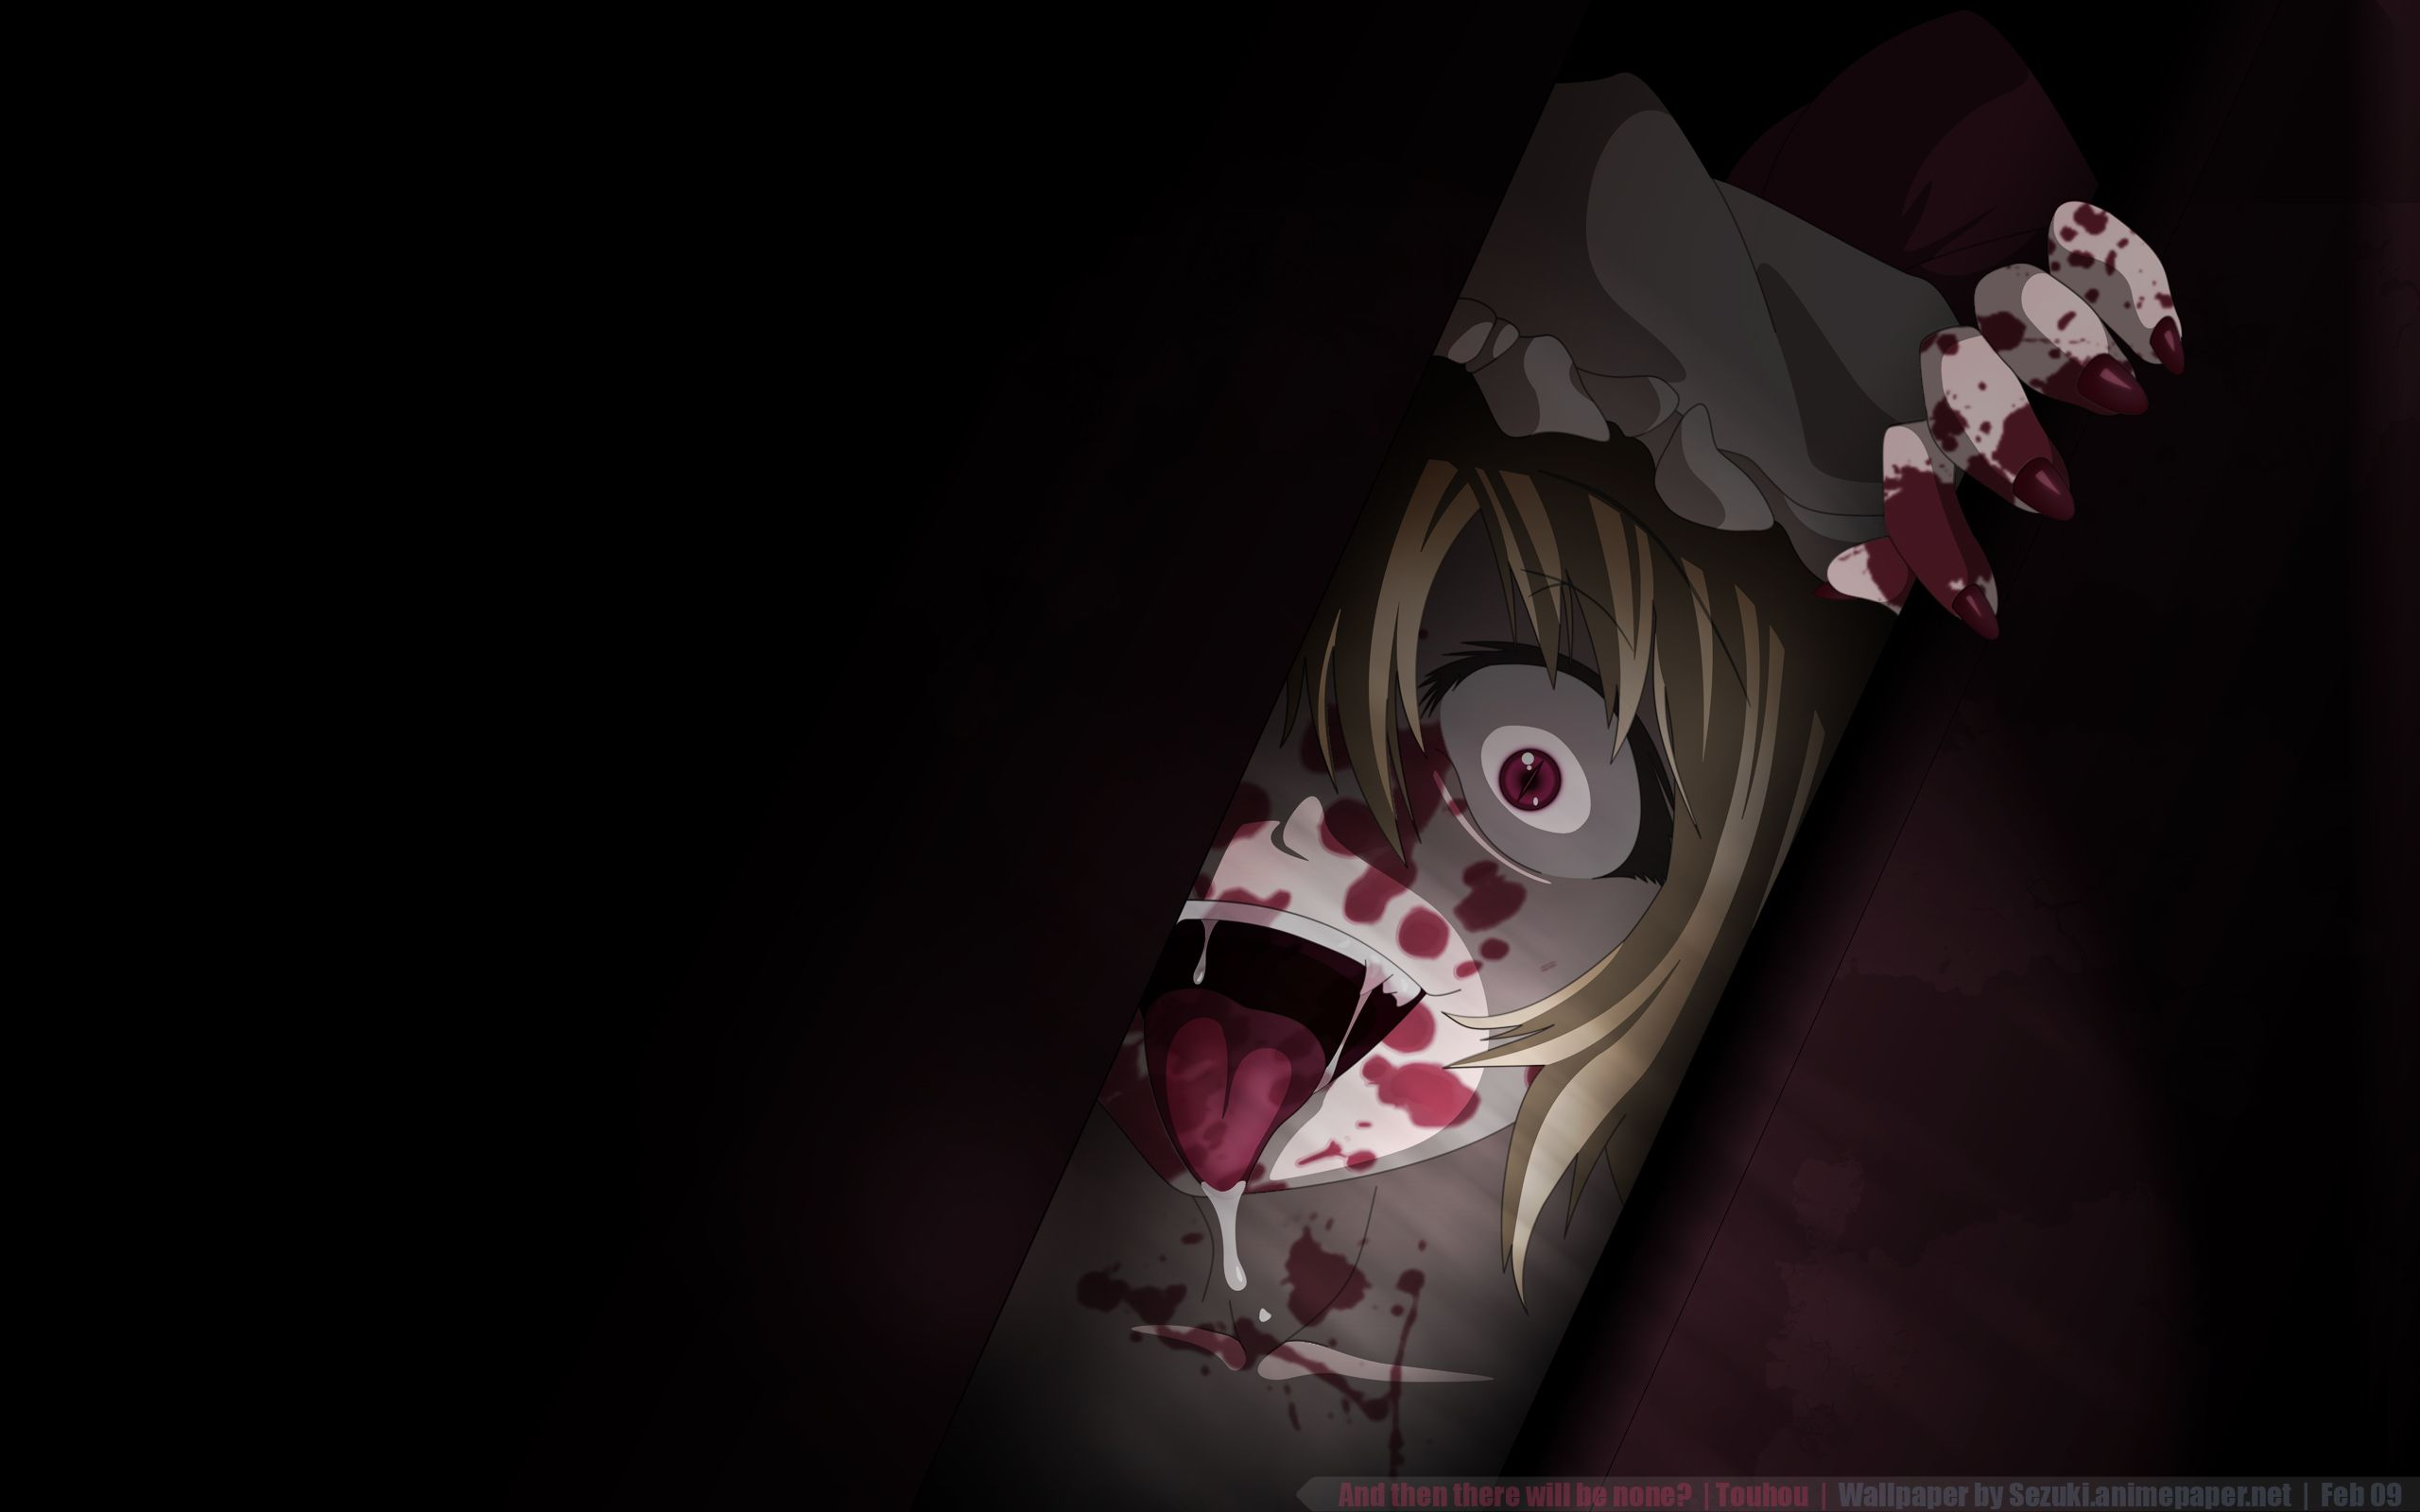 Creepy anime wallpapers for iphone amazing wallpapers - Scary wallpaper iphone ...